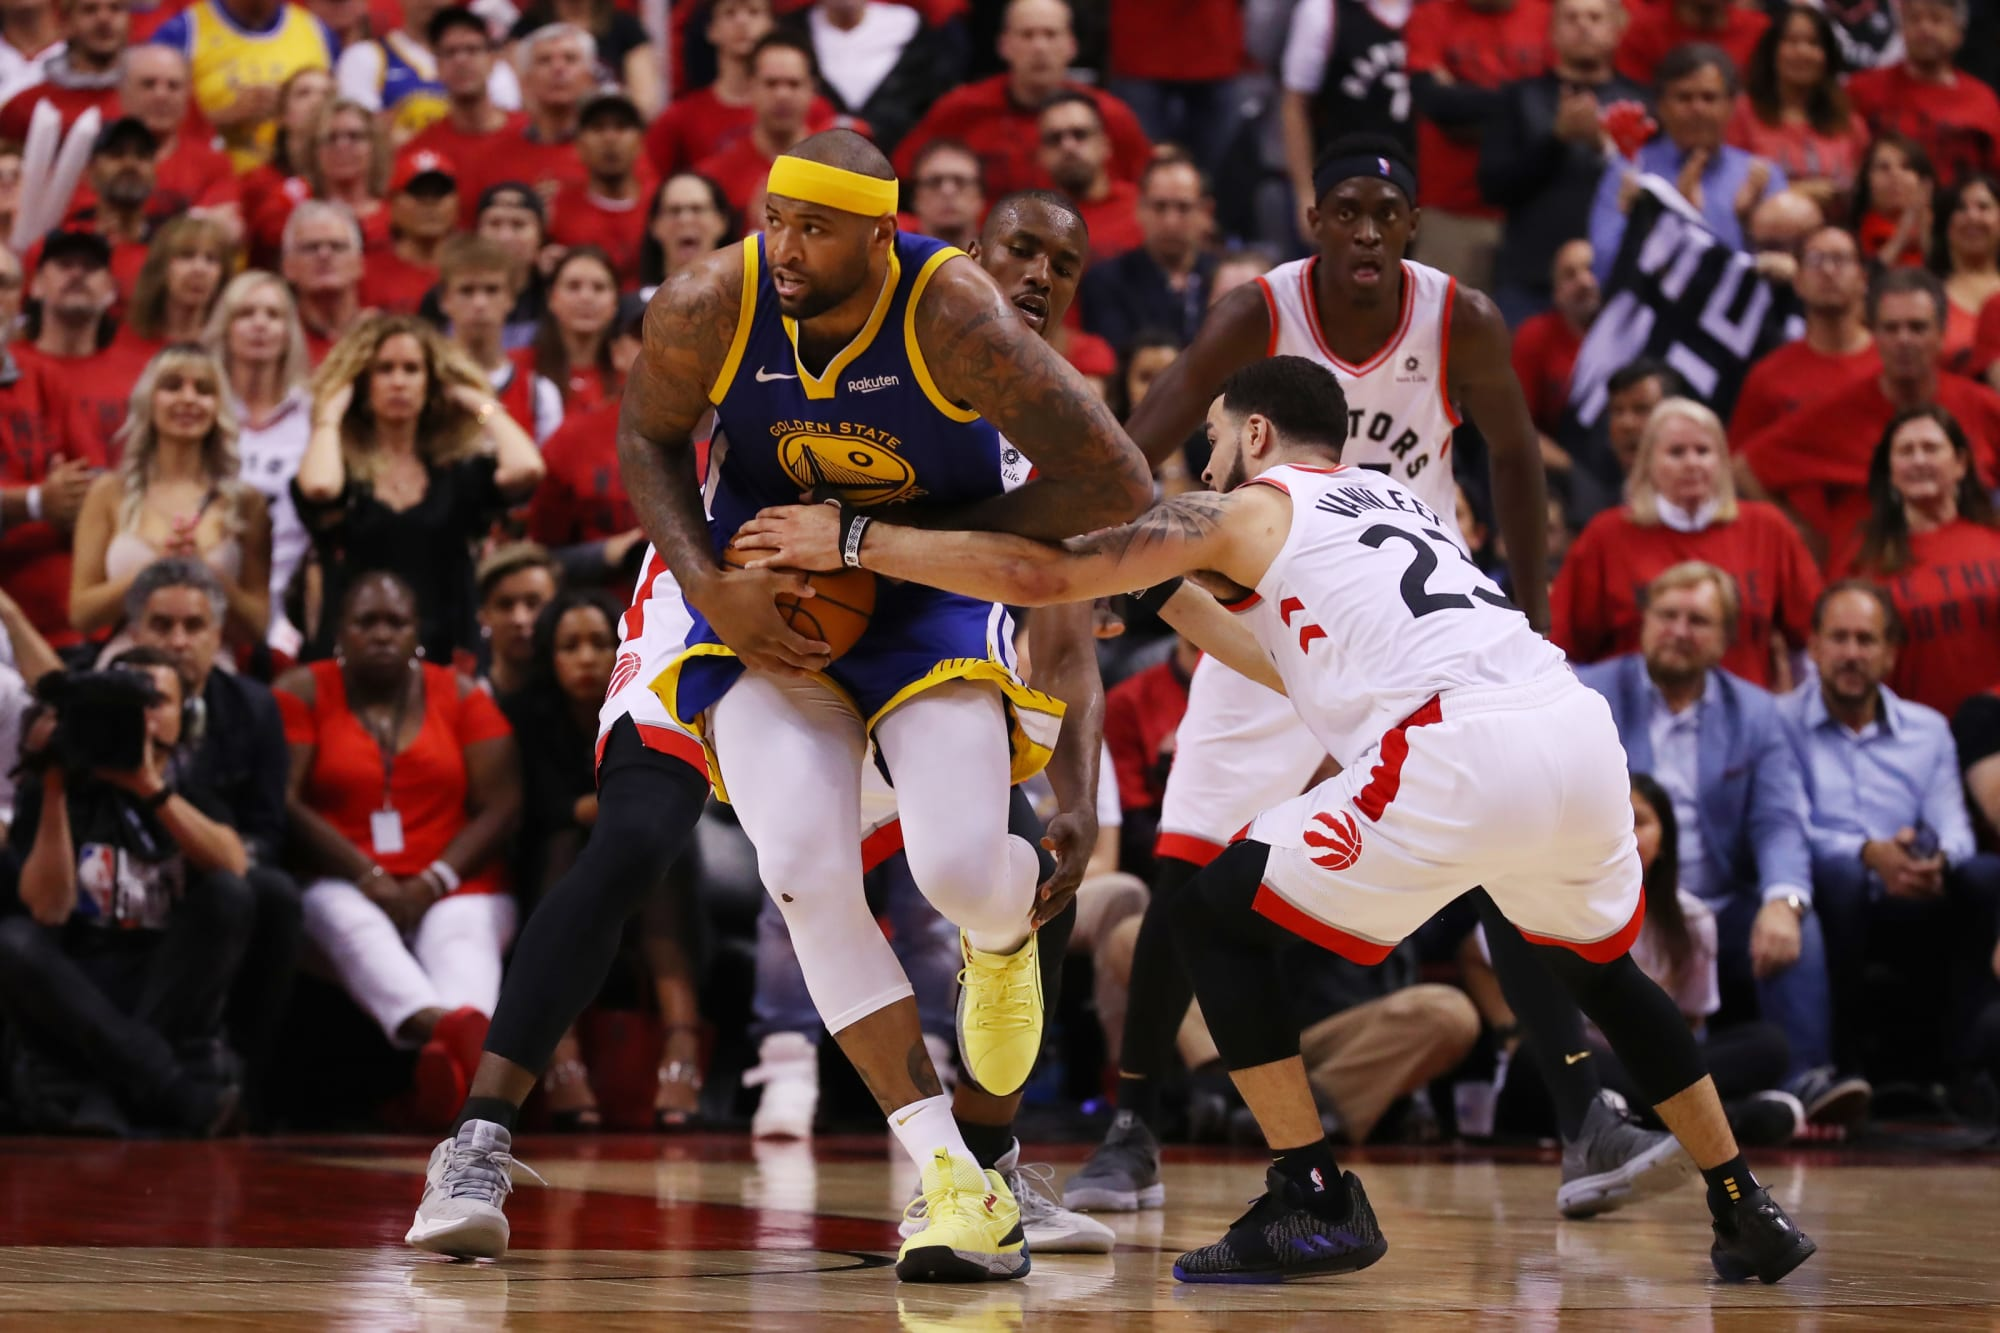 Raptors: Toronto should stay far away from DeMarcus Cousins